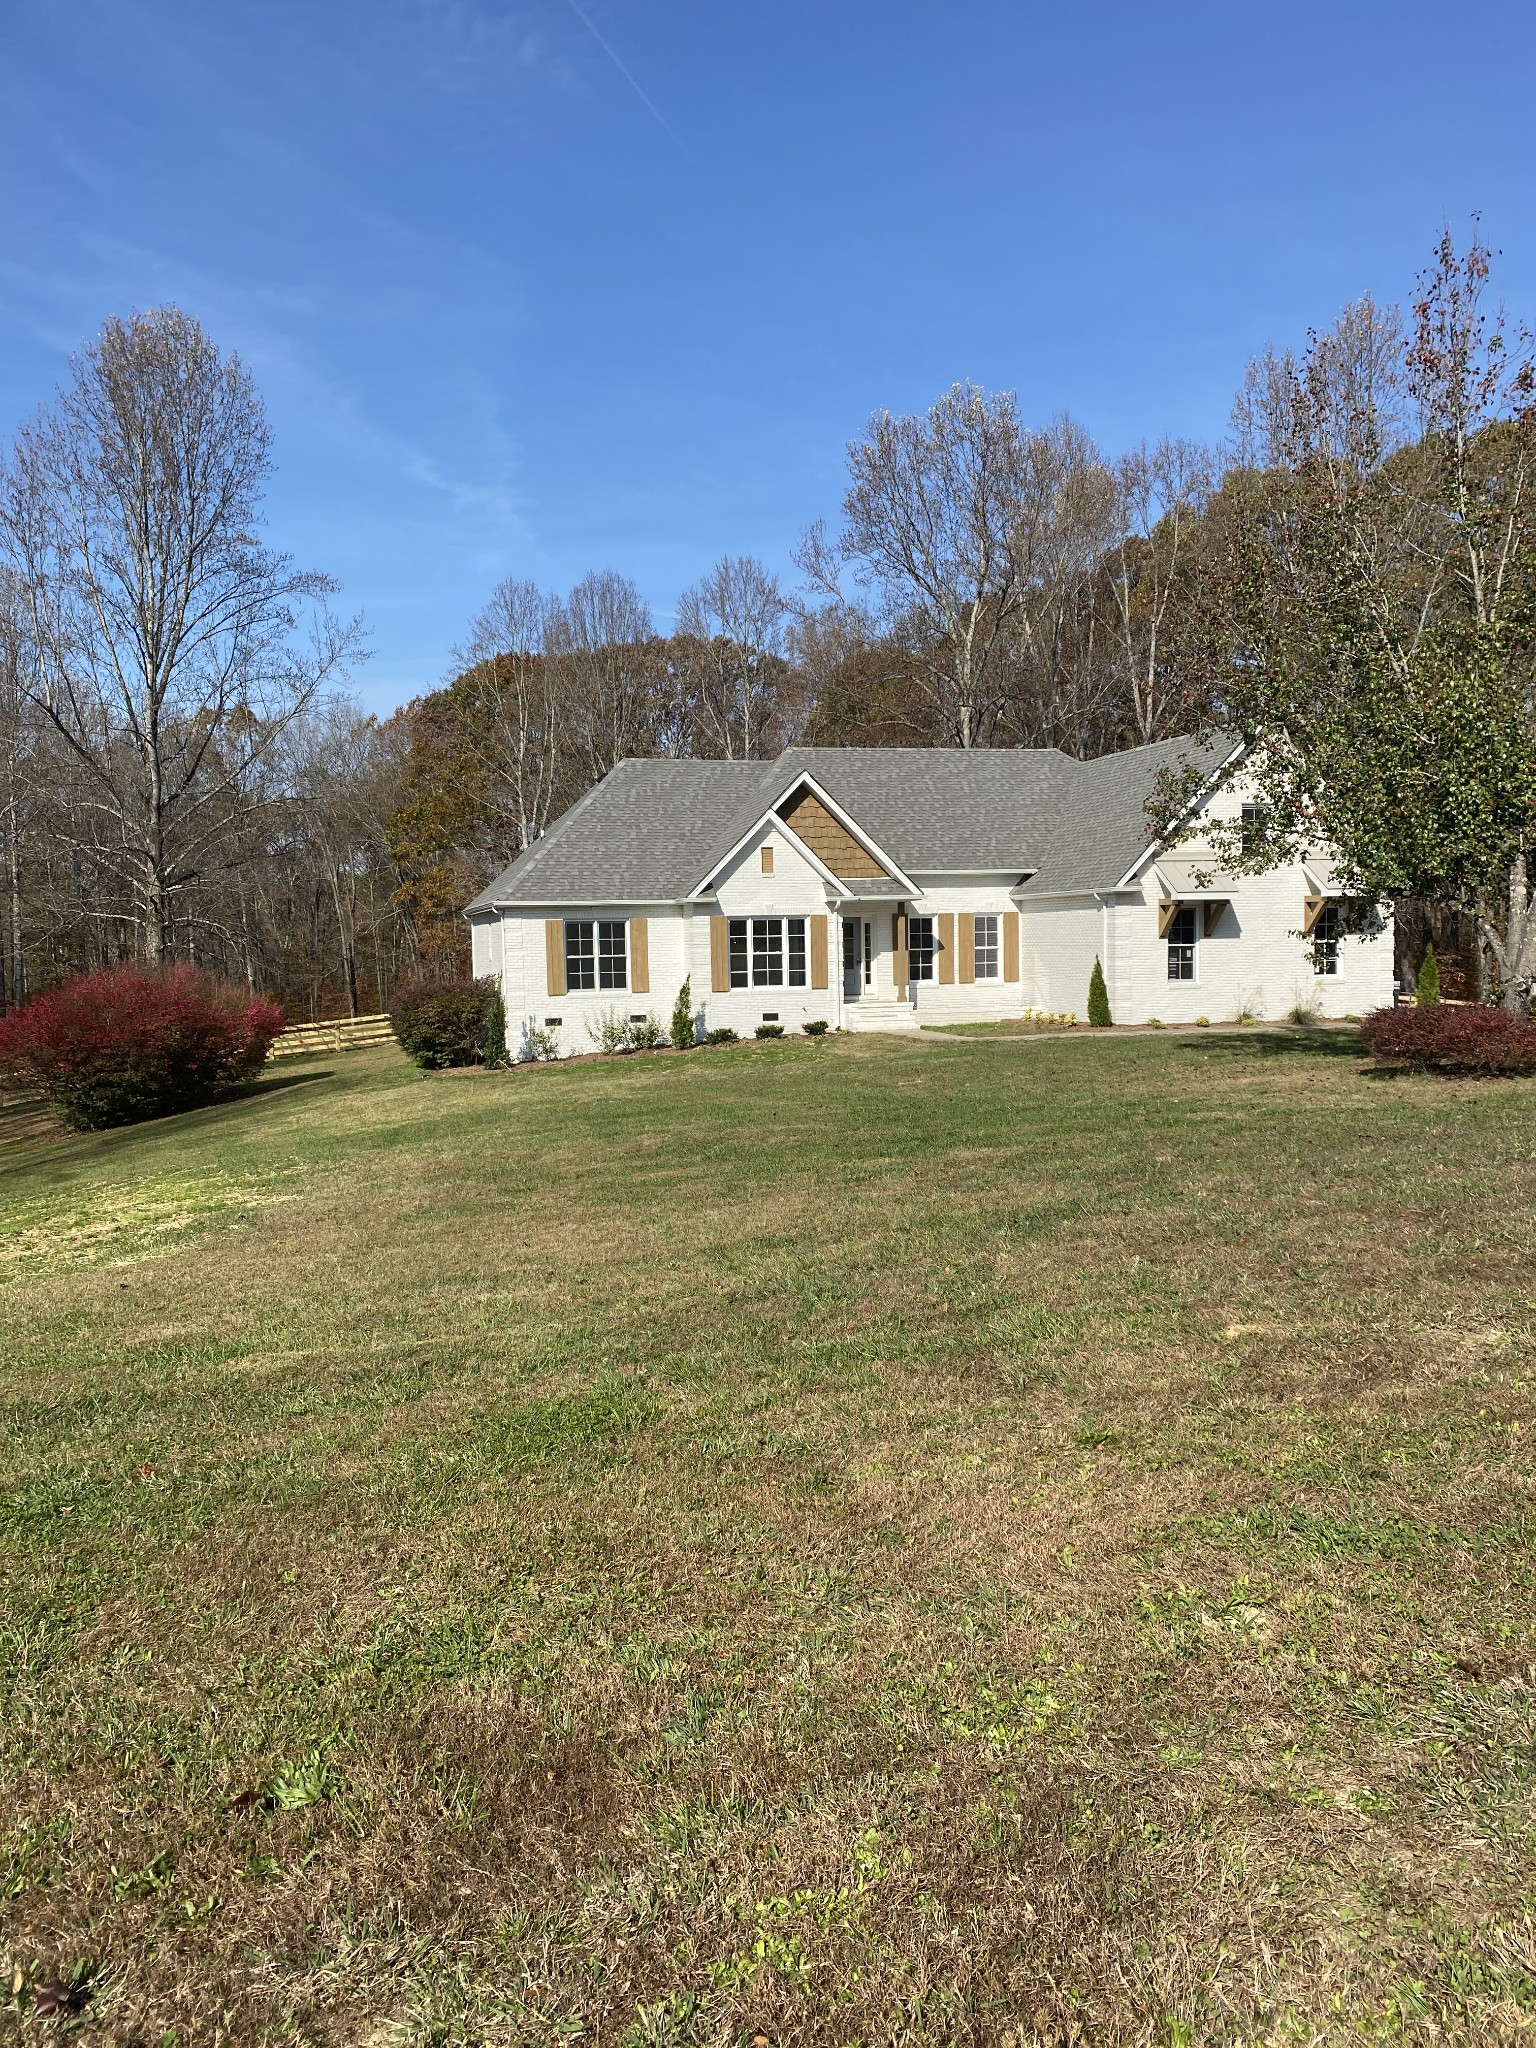 186 Evans Dr Property Photo - Tullahoma, TN real estate listing